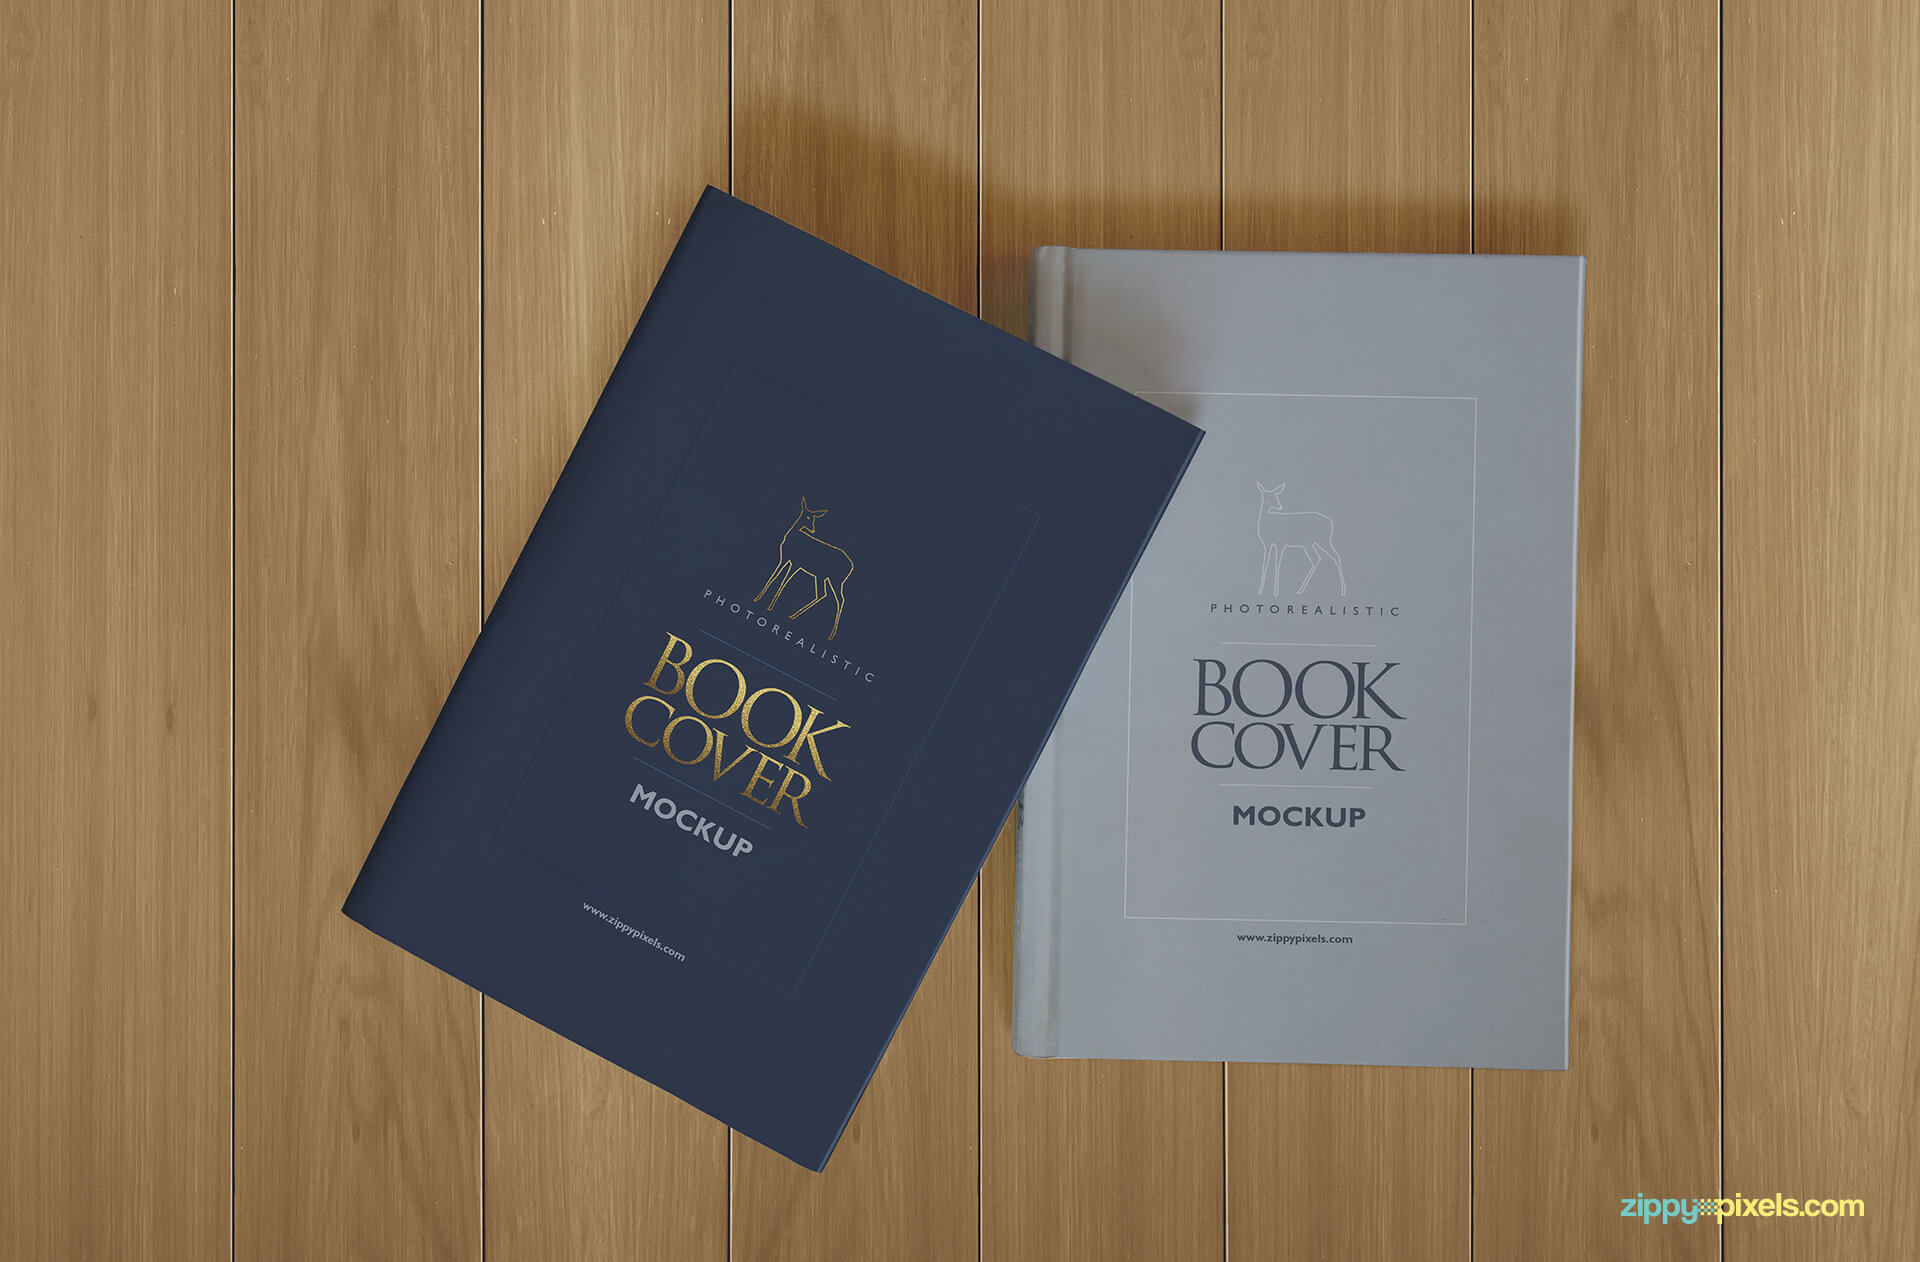 Hardcover book mockup showing two books with hardback and dustcover lying on table